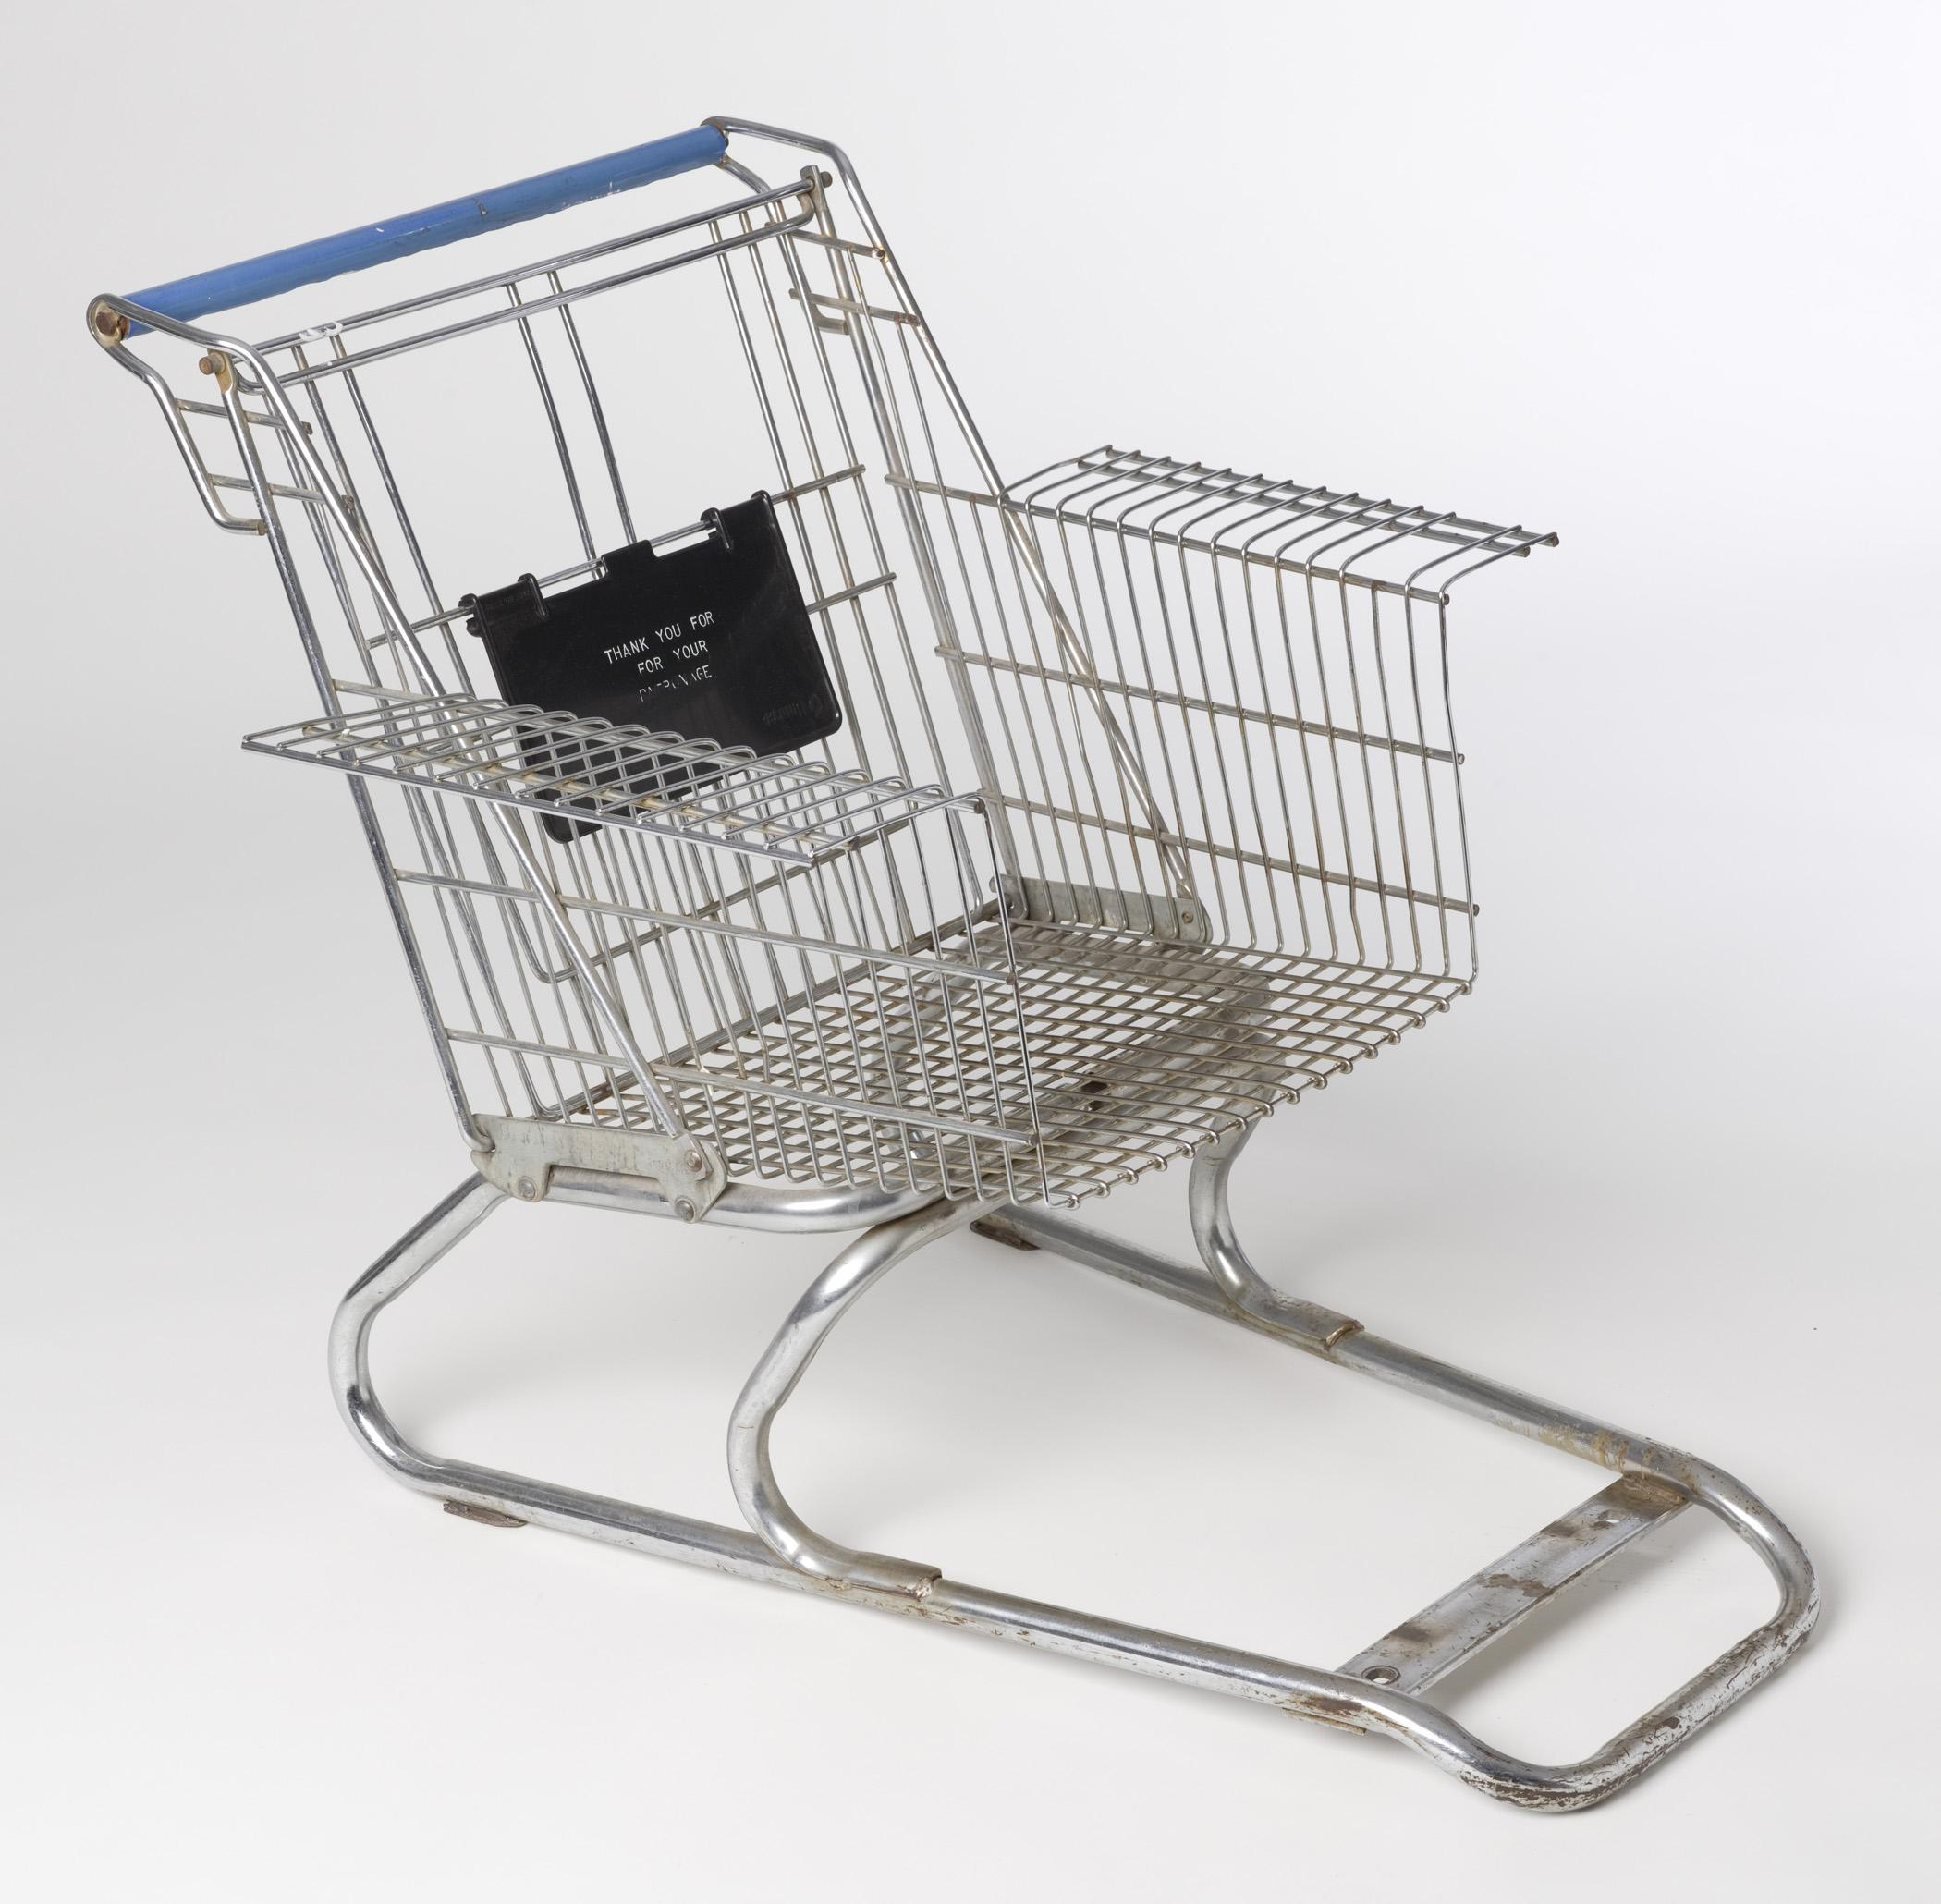 A metal grocery cart without wheels has been modified for use as an arm chair.